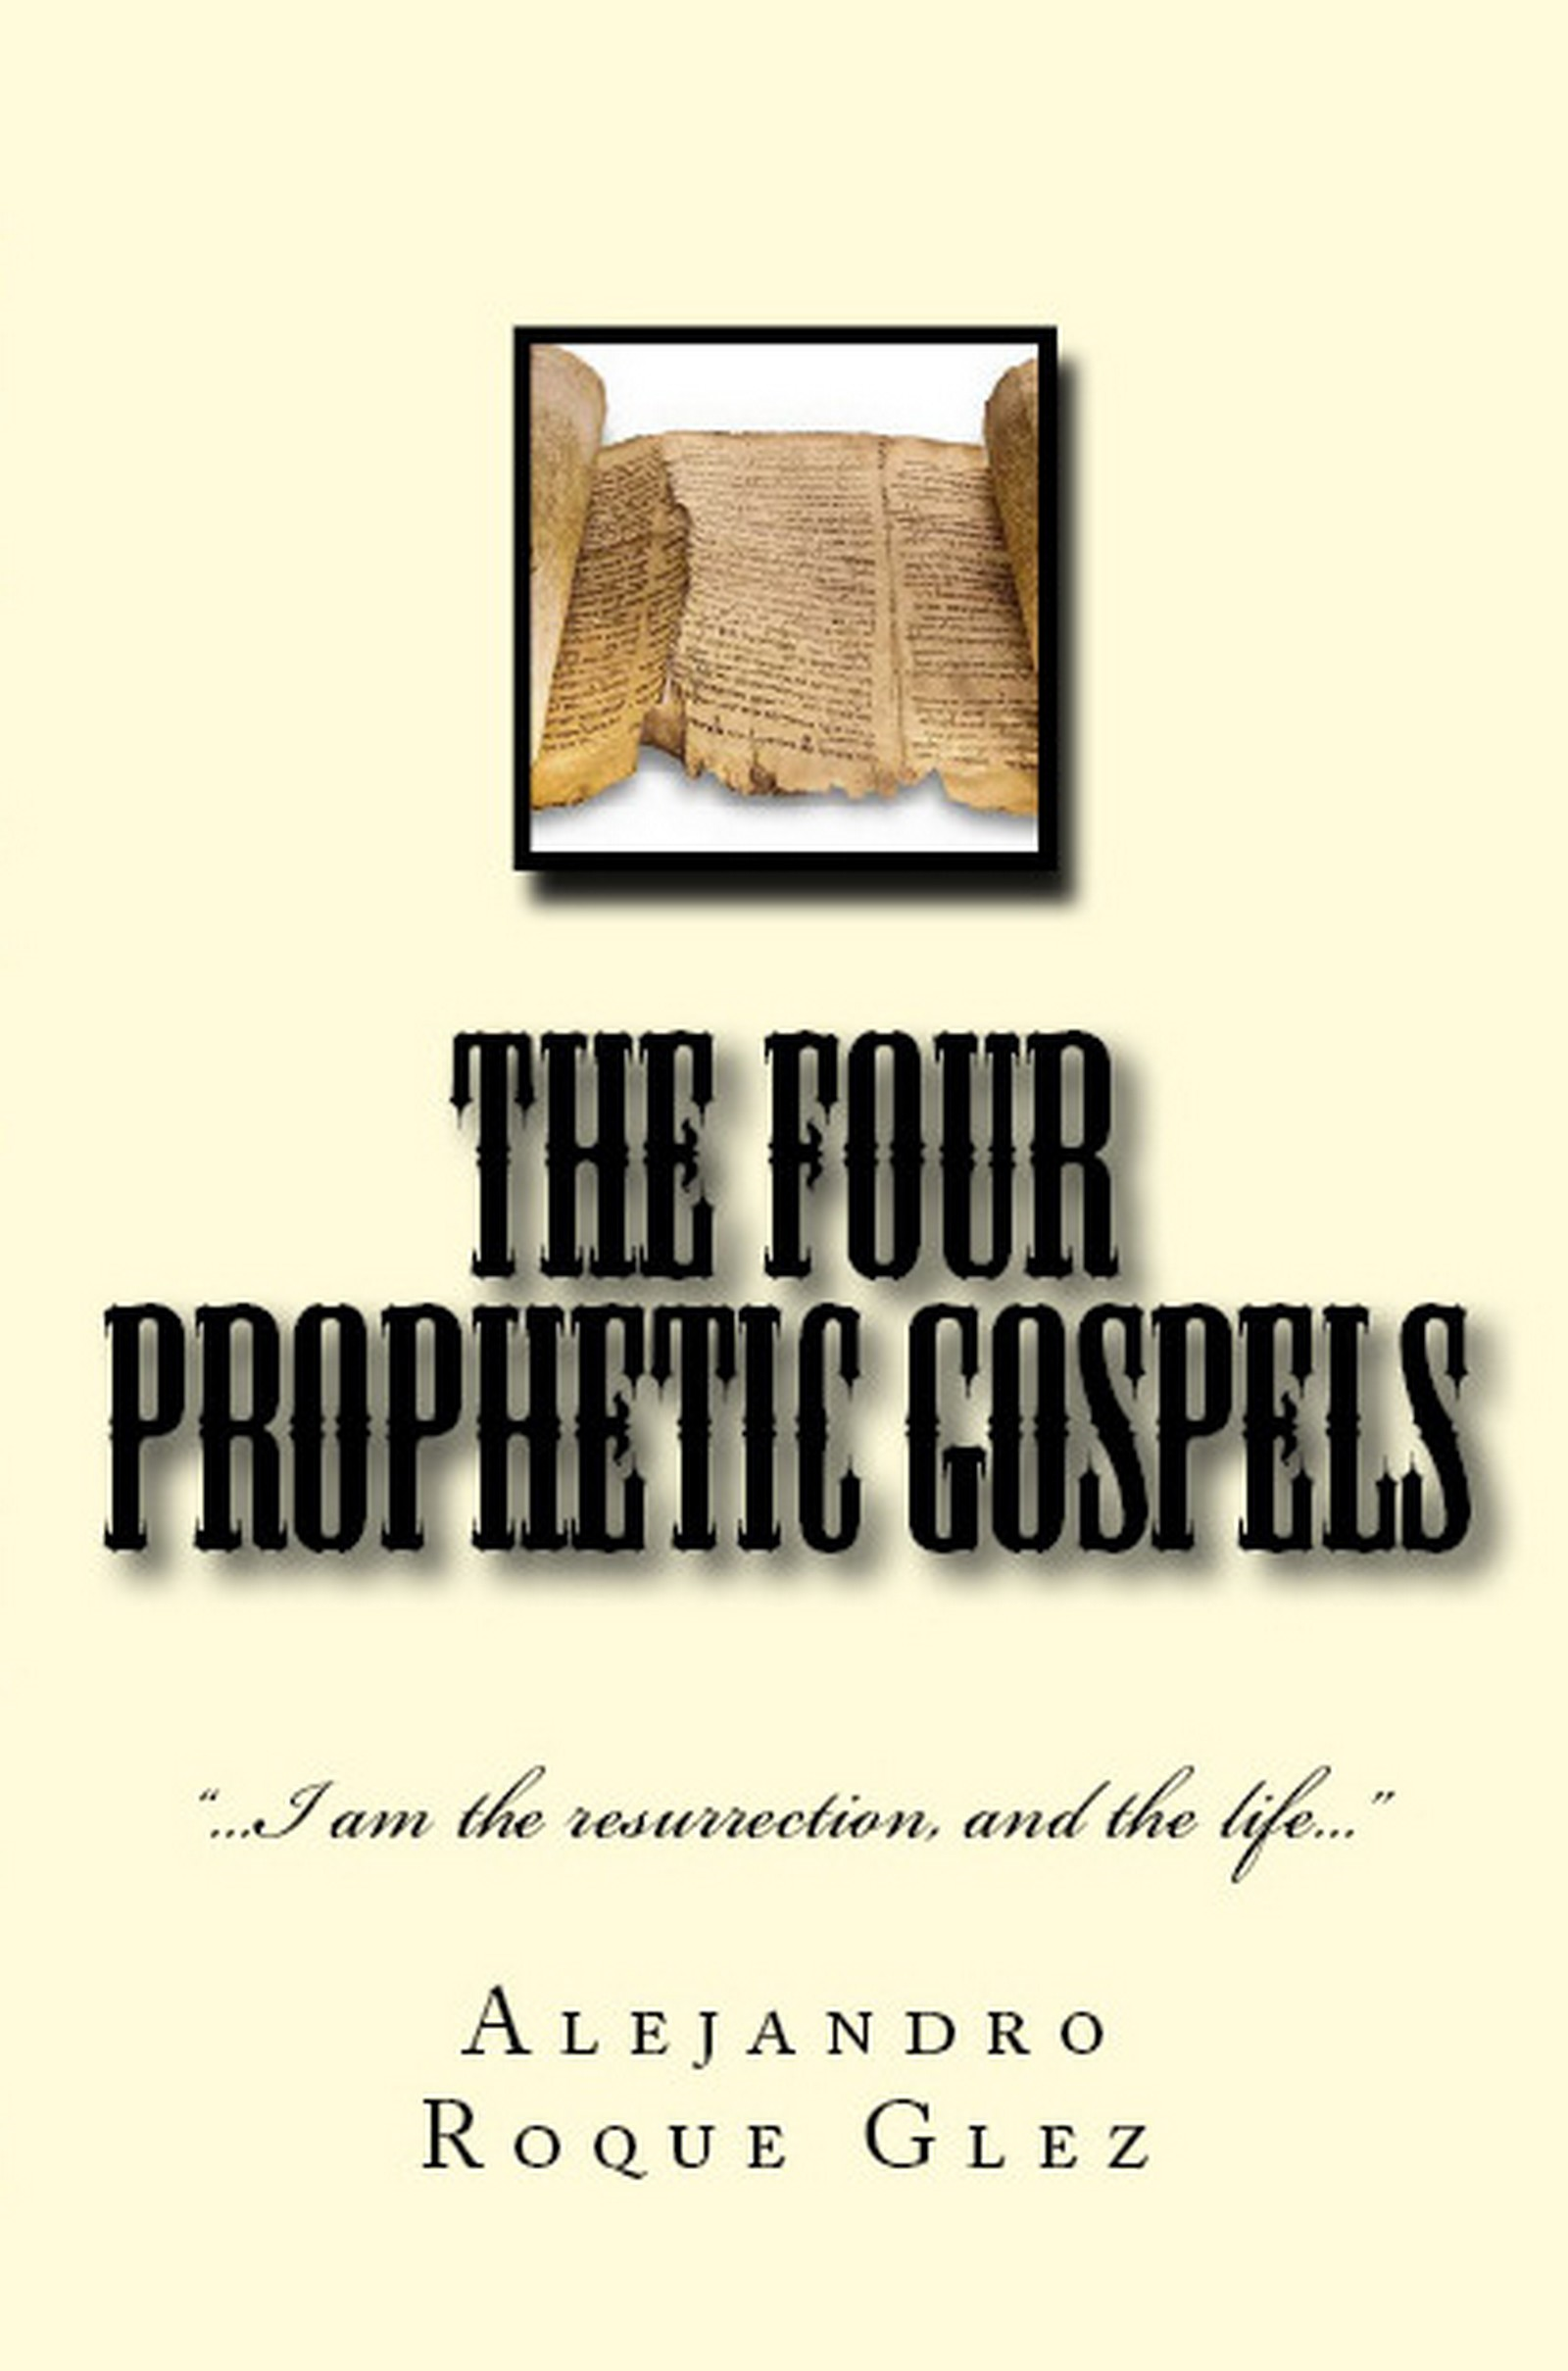 The Four Prophetic Gospels.